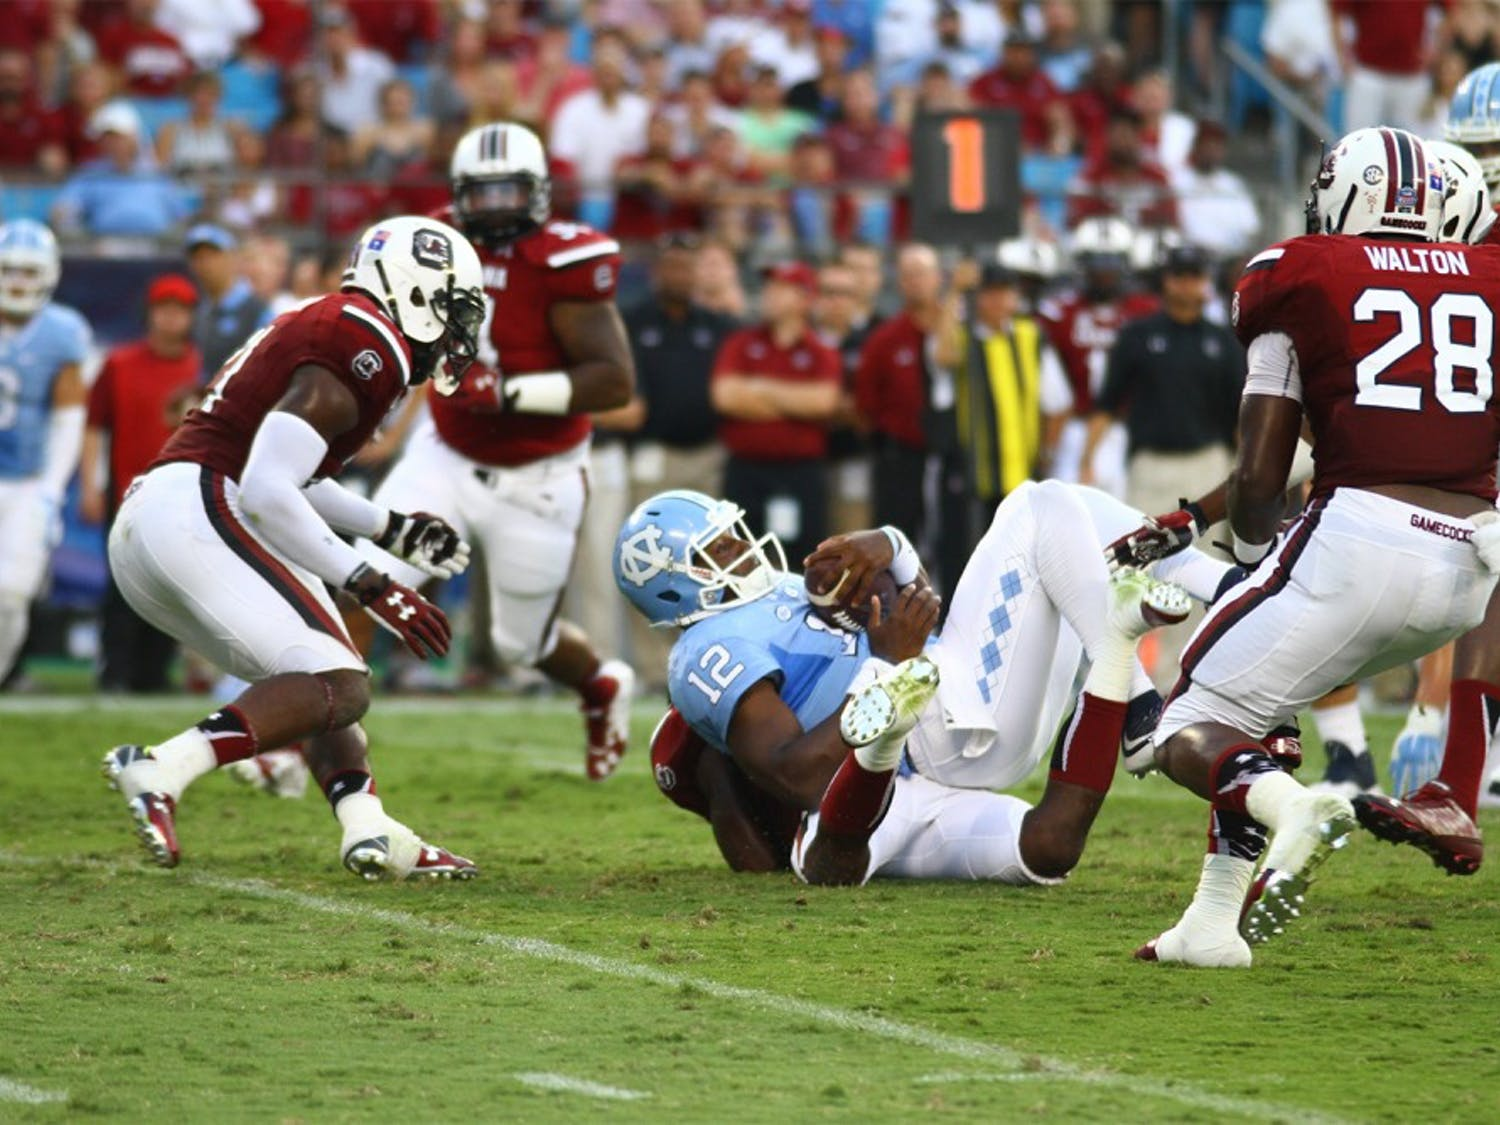 South Carolina surrounds senior quarterback Marquise Williams (12). Williams threw three interceptions on Sept. 3 in a 17-13 loss against the Gamecocks.